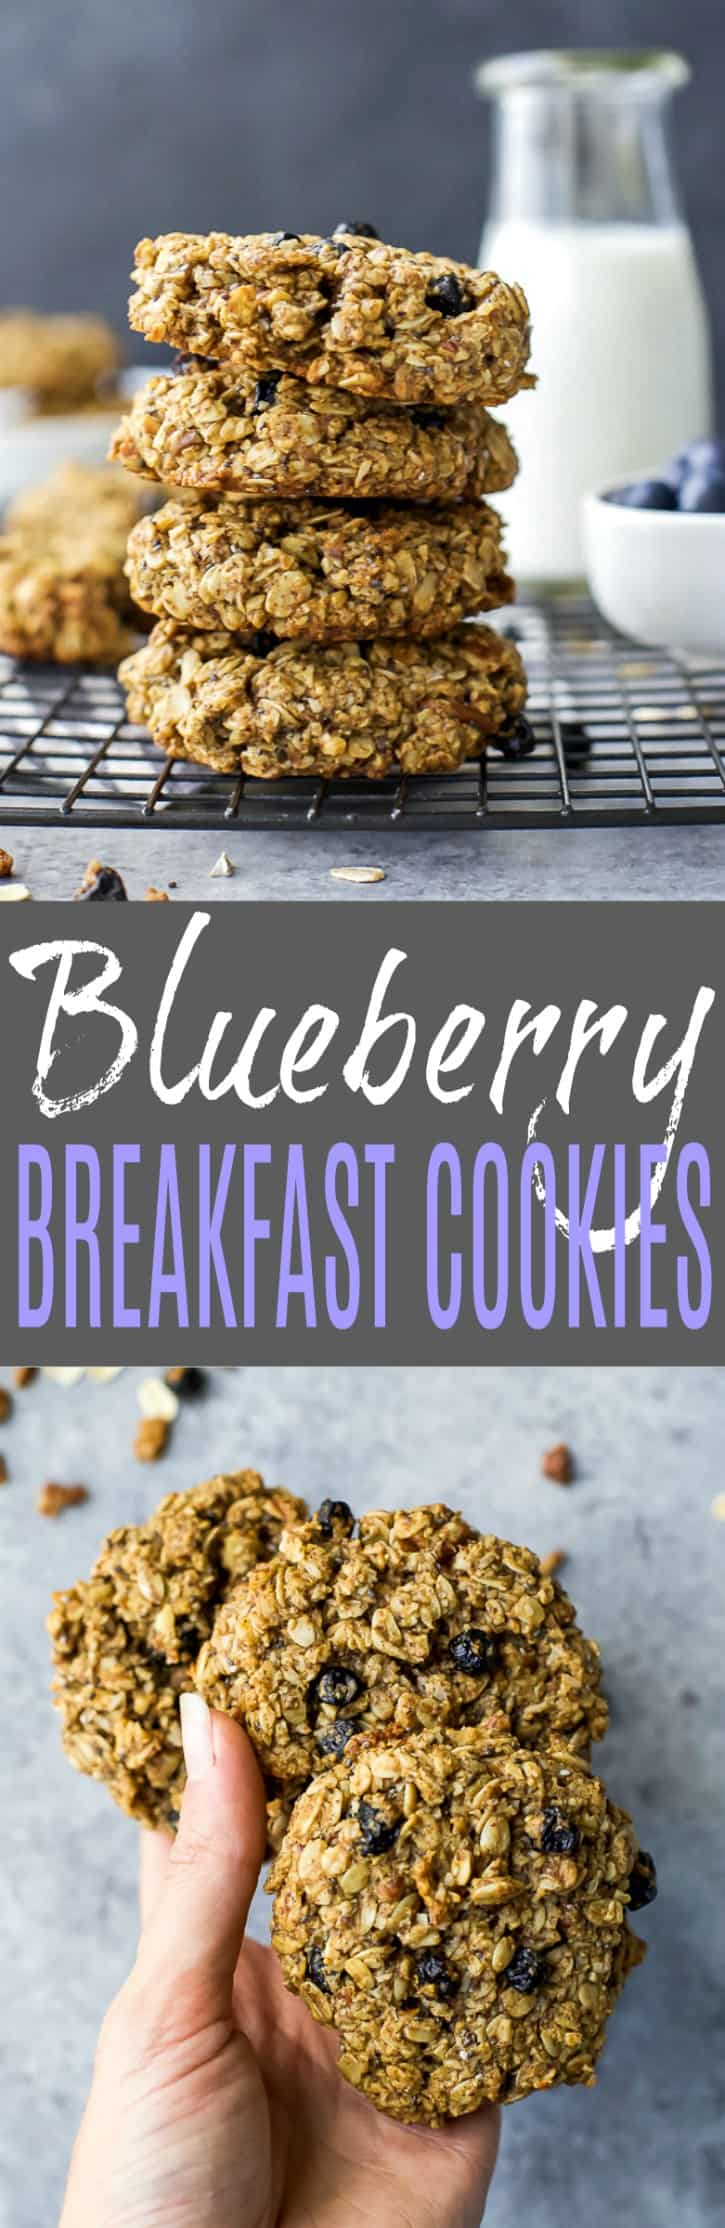 A Gluten Free Blueberry Breakfast Cookie baked to perfection, moist, naturally sweetened, high in fiber and perfect for a grab 'n go breakfast! These cookies will rock your world! {dairy free, egg free, gluten free}